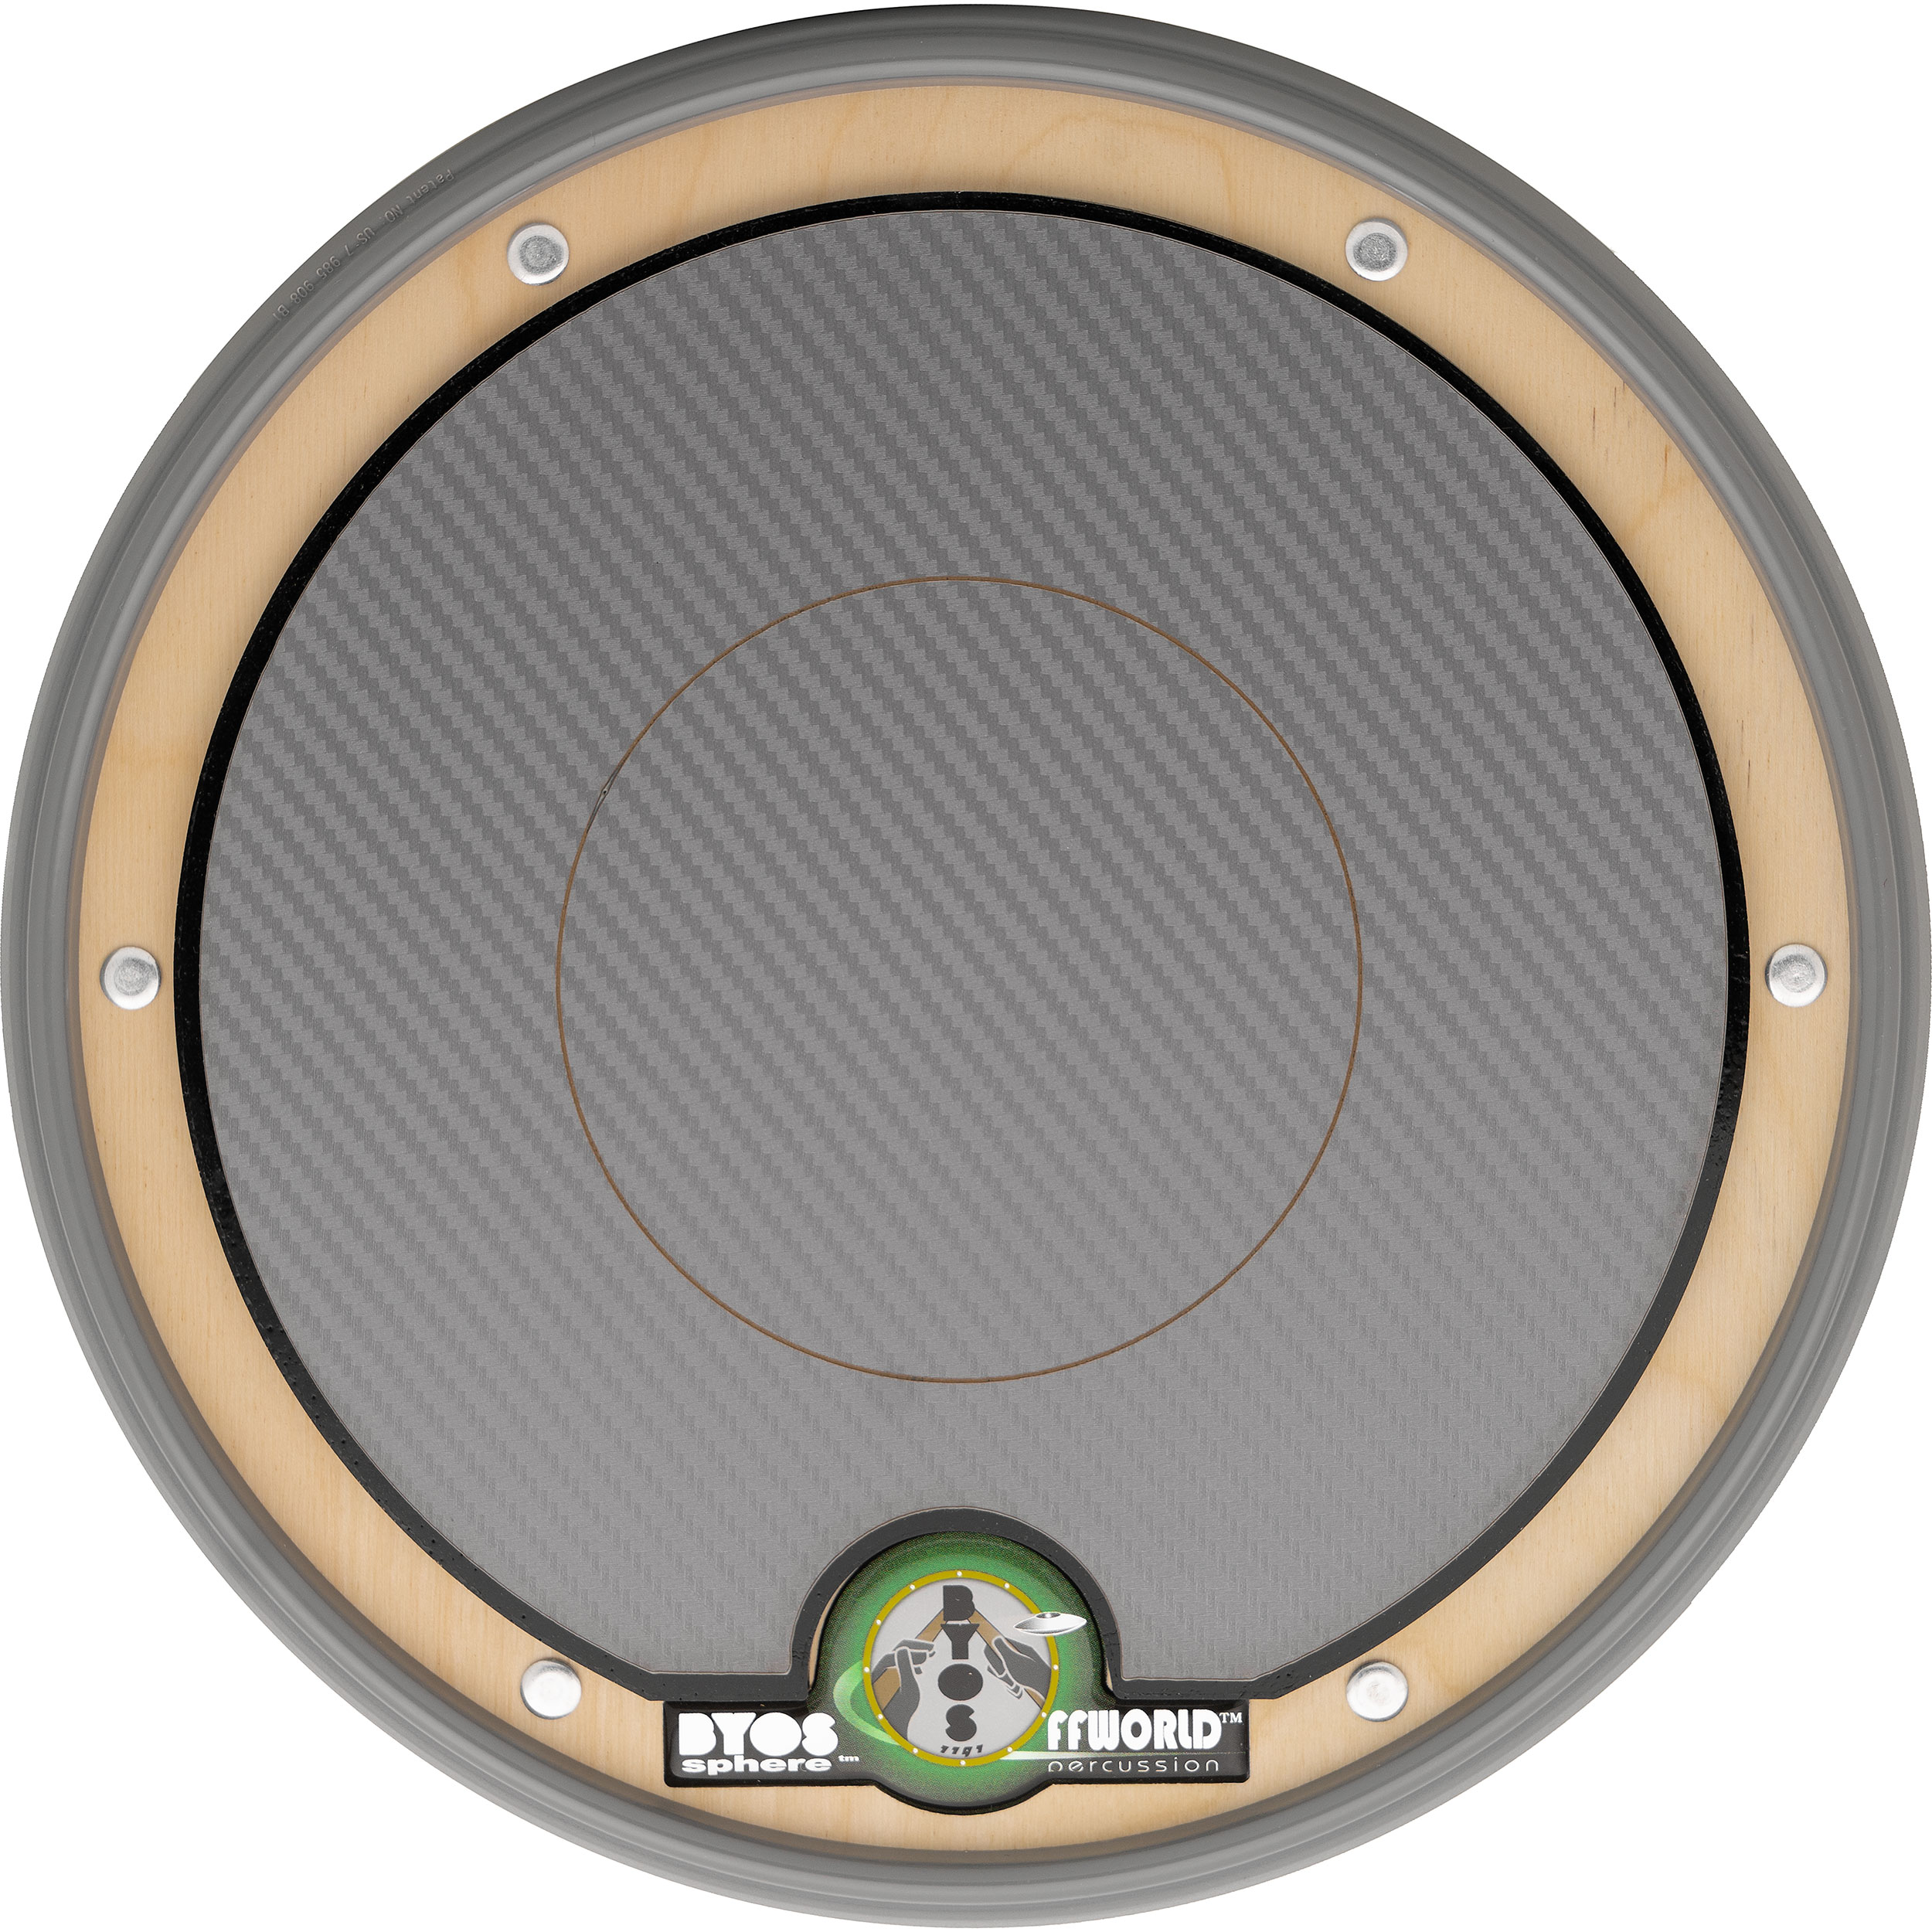 Offworld Percussion BYOSphere Practice Pad with Gunmetal Laminate